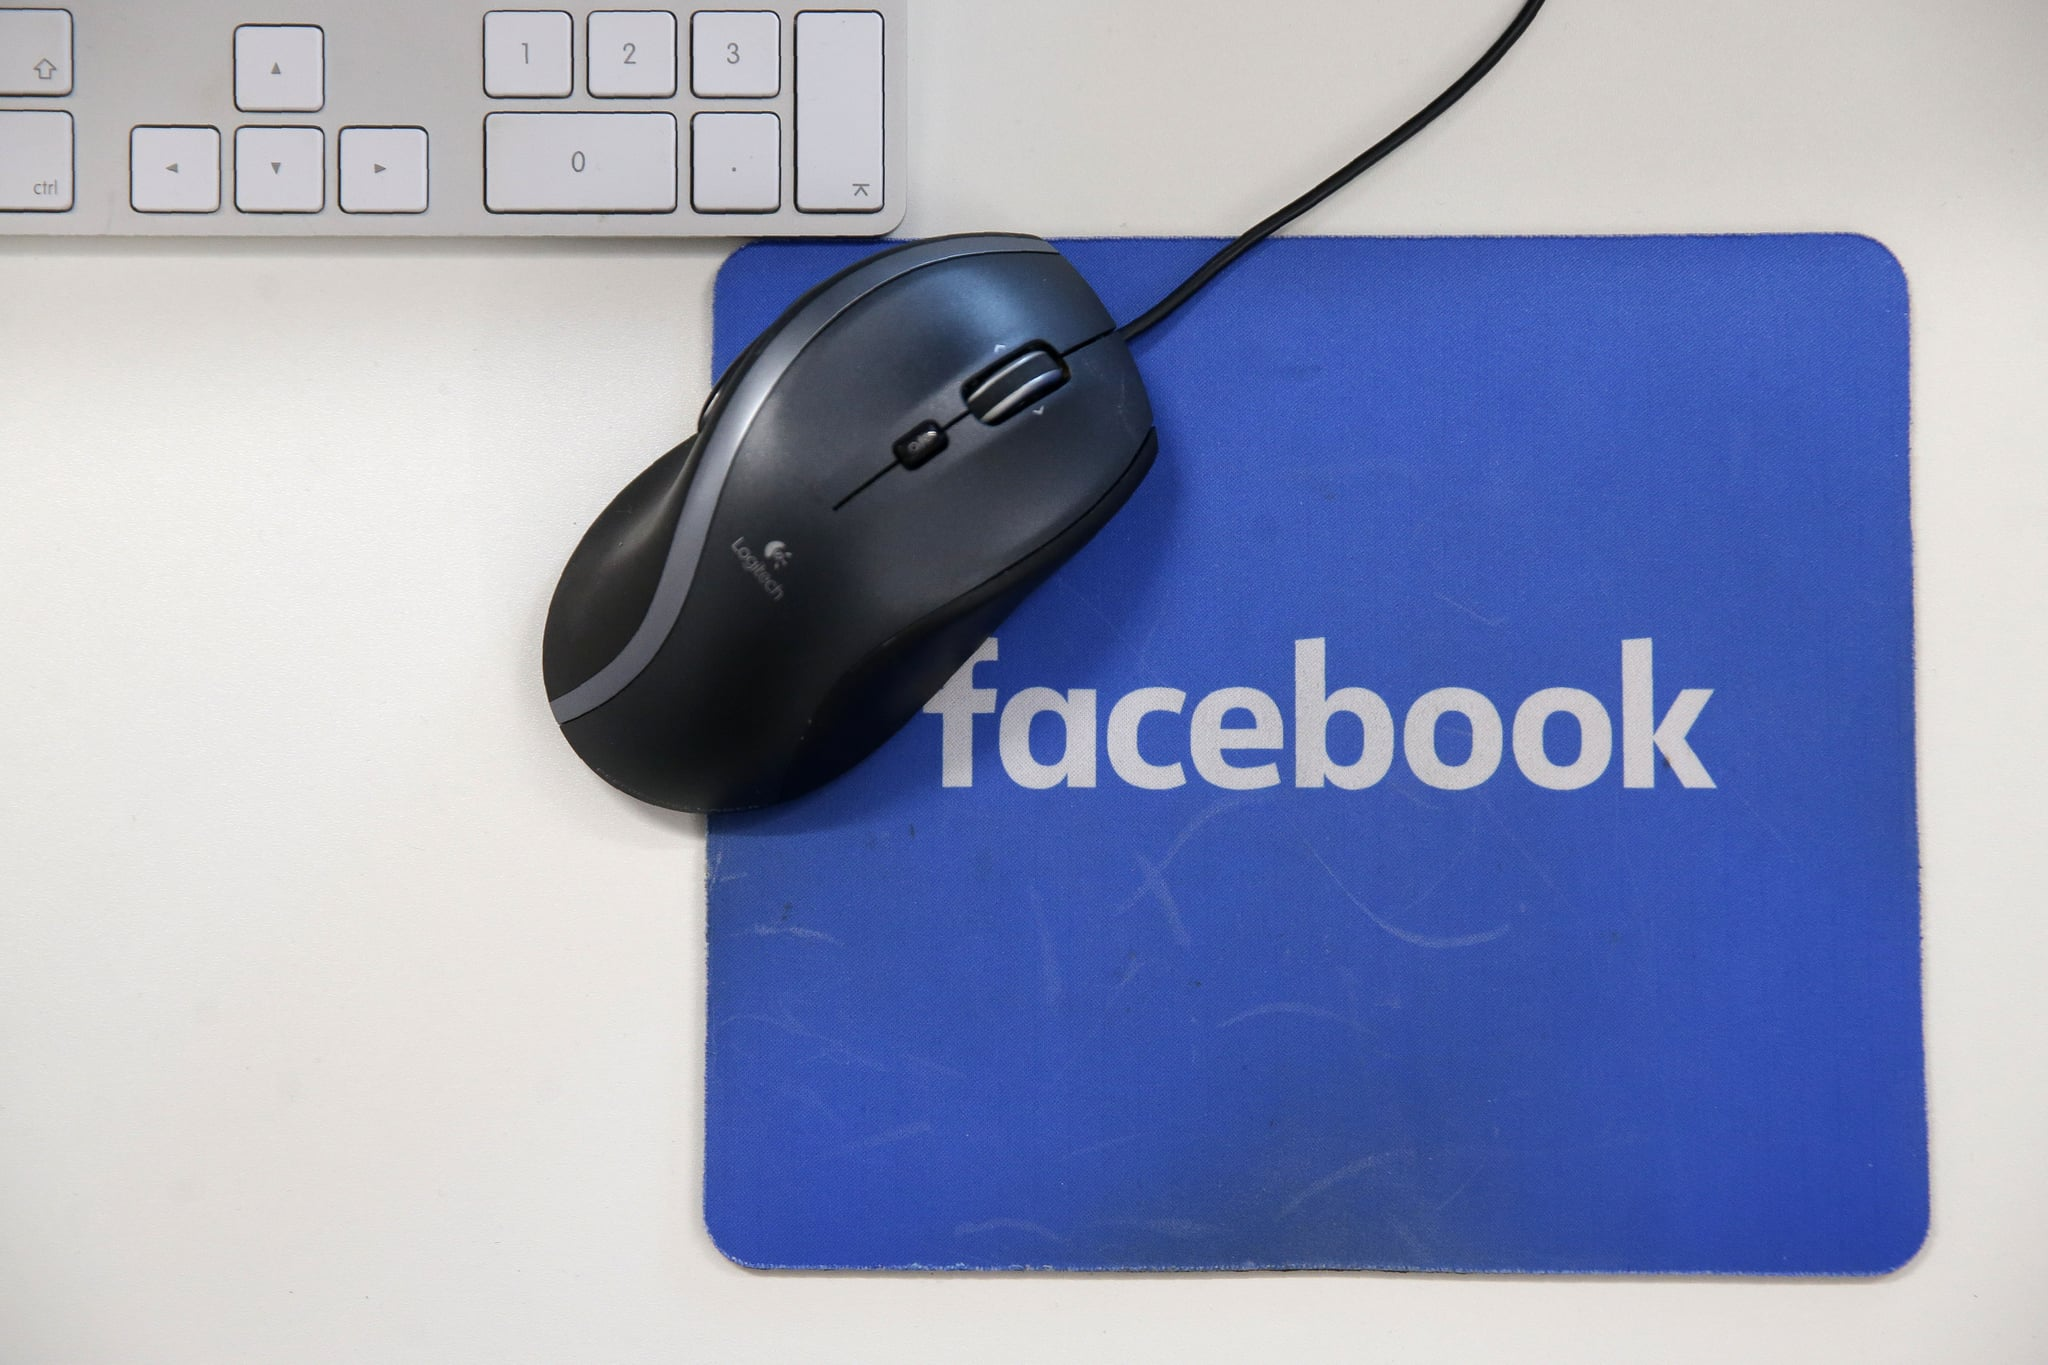 A mousepad with the Facebook logo is seen at Facebook's new headquarters, designed by Canadian-born American architect Frank Gehry, at Rathbone Place in central London on December 4, 2017.Social media titan Facebook opened a new office in London on December 4, 2017, that is set to be its biggest engineering hub outside America, the company has announced. / AFP PHOTO / Daniel LEAL-OLIVAS        (Photo credit should read DANIEL LEAL-OLIVAS/AFP/Getty Images)